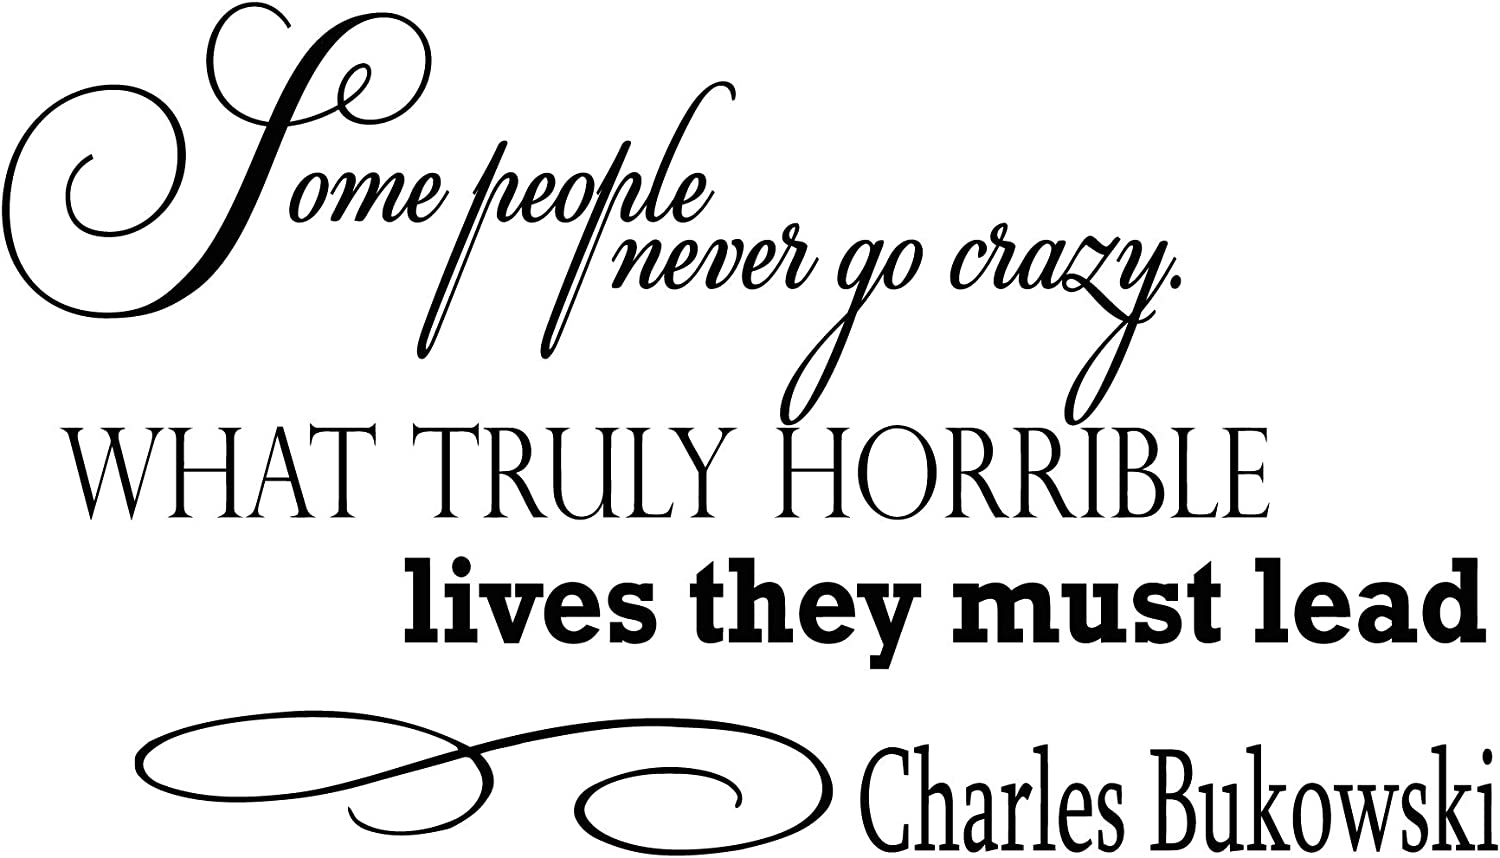 Wall Vinyl Decal Quote Sticker Home Decor Art Mural Some People Never go Crazy. What Truly Horrible Lives They Must Lead Charles Bukowski Z121